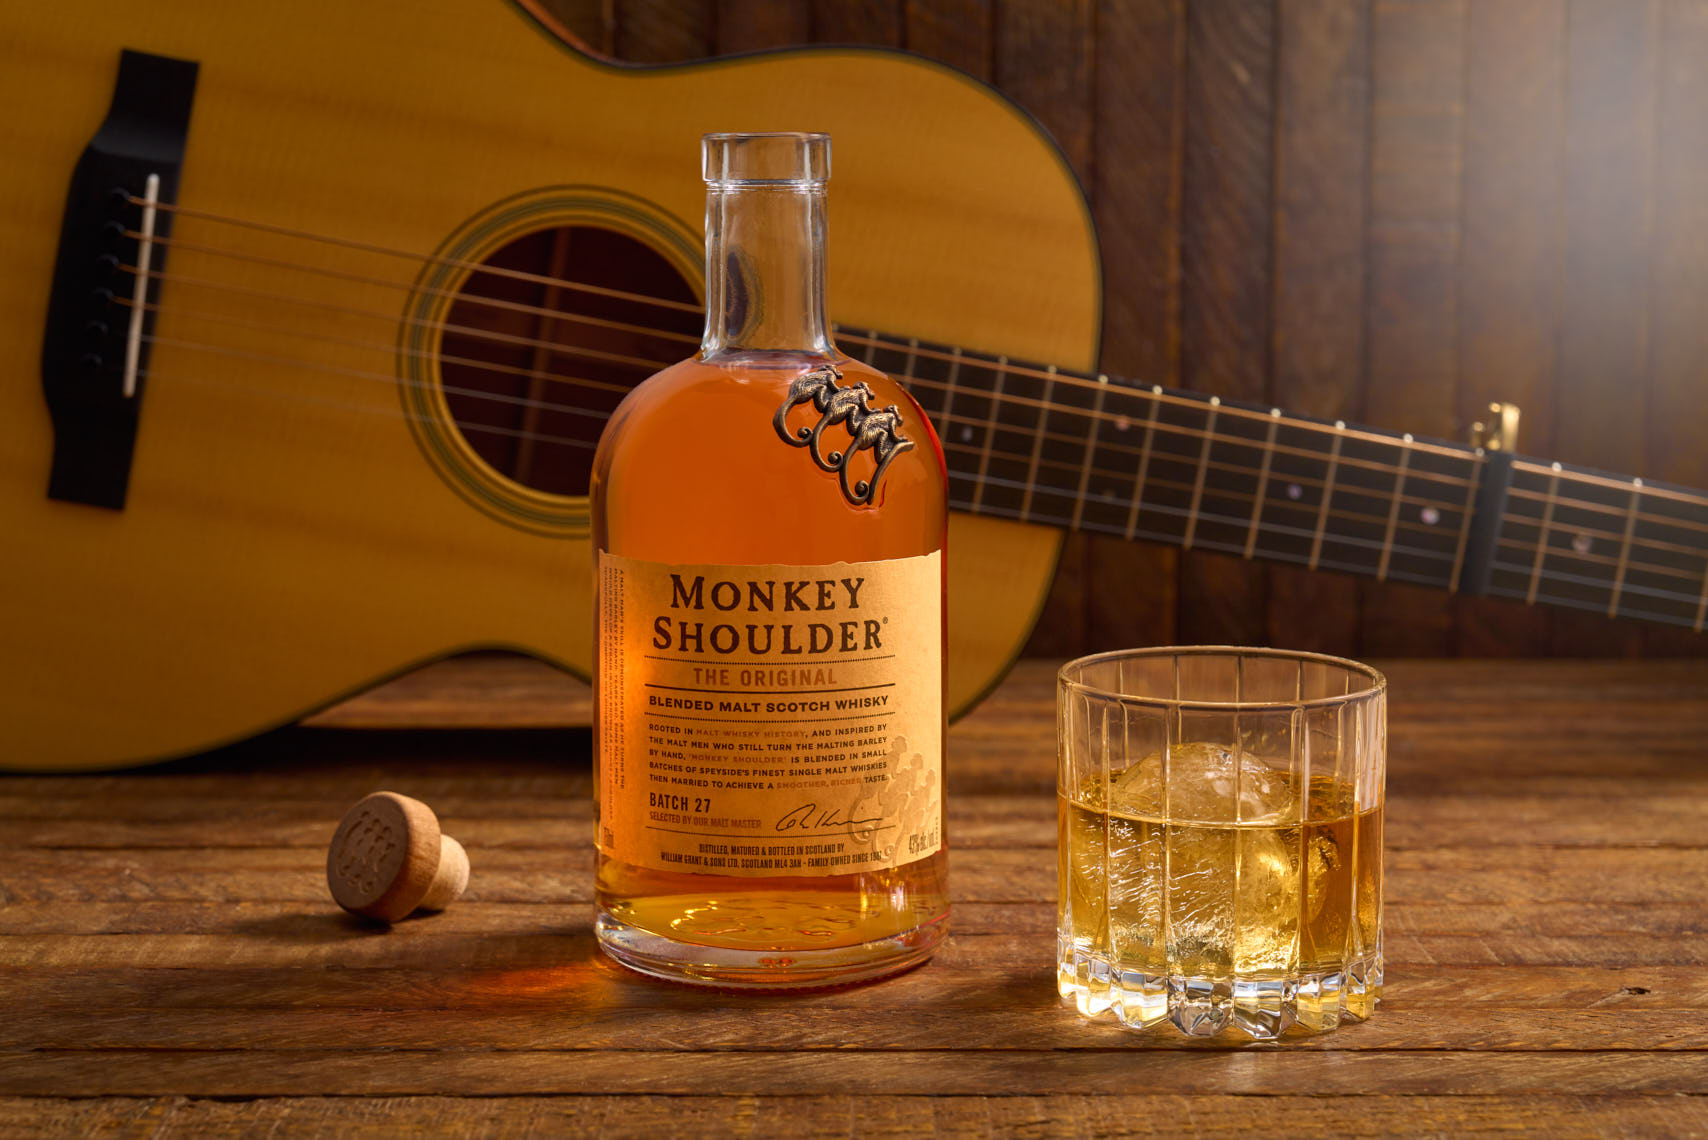 Monkey Shoulder Scotch - Drink Photography PA, NJ & NYC